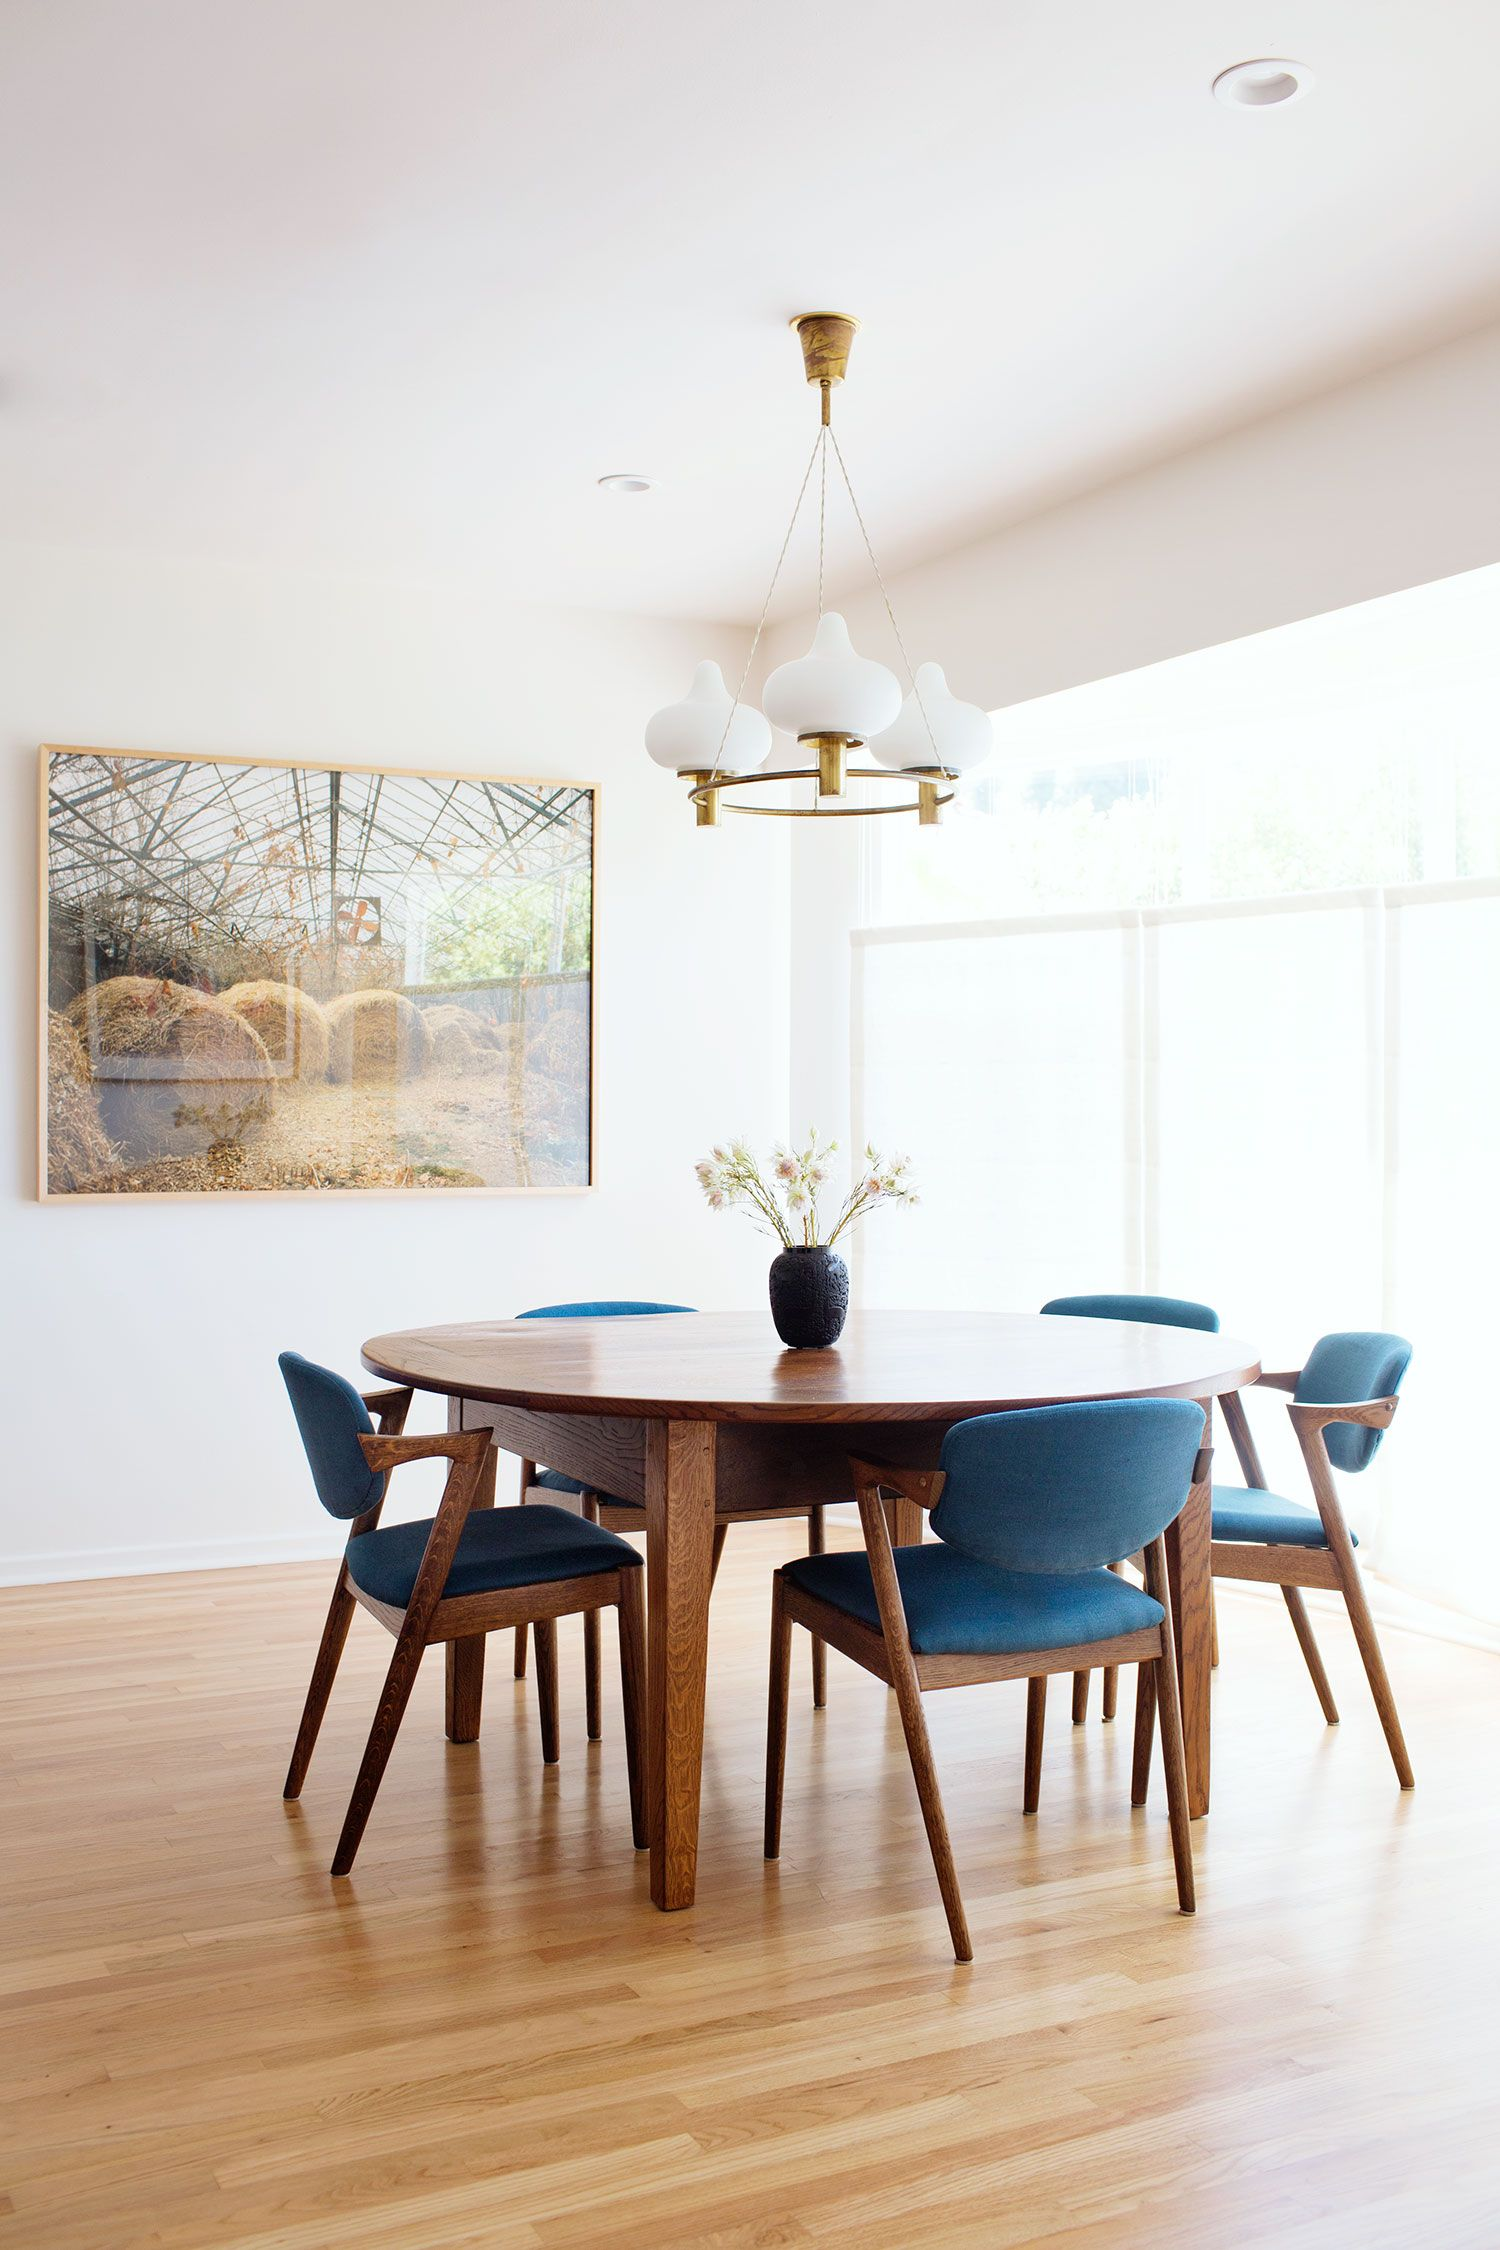 A Mid Century Dining Room Set Is Going To Be The Hit Wonder If Youre Looking For What Buy Next Year This One With Blue Tones When It Comes